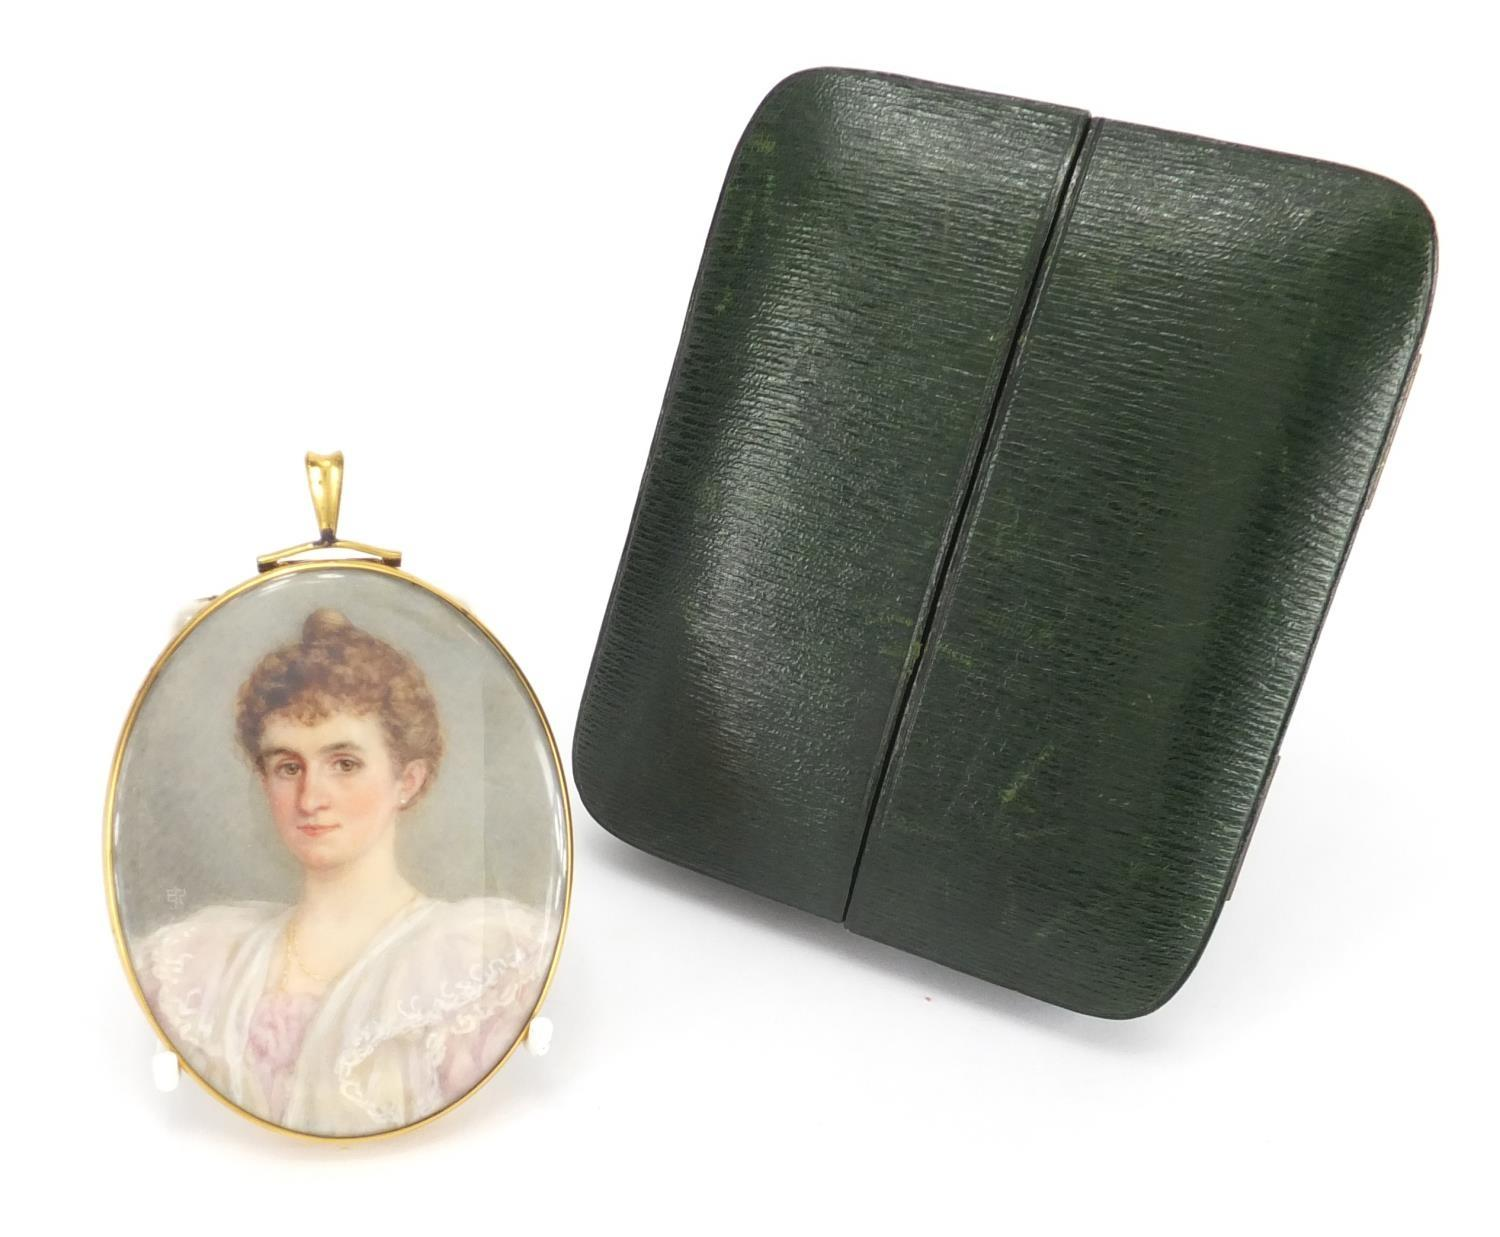 Lot 2 - Oval Georgian hand painted portrait miniature of a female, housed in a gilt metal mouring locket